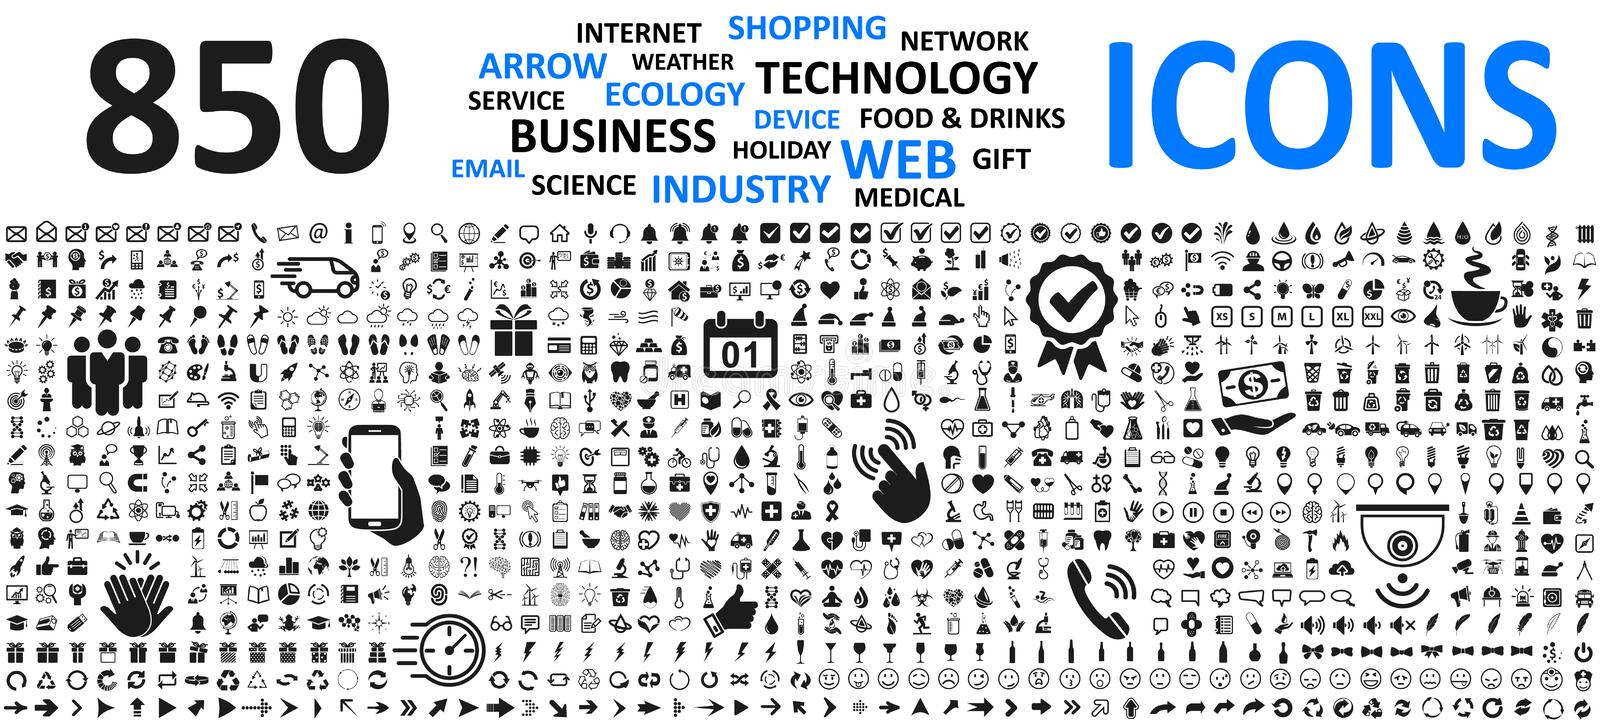 Big set icons: business, shopping, device, technology, medical, ecology, food & drink and many more for any cases of life using vector illustration